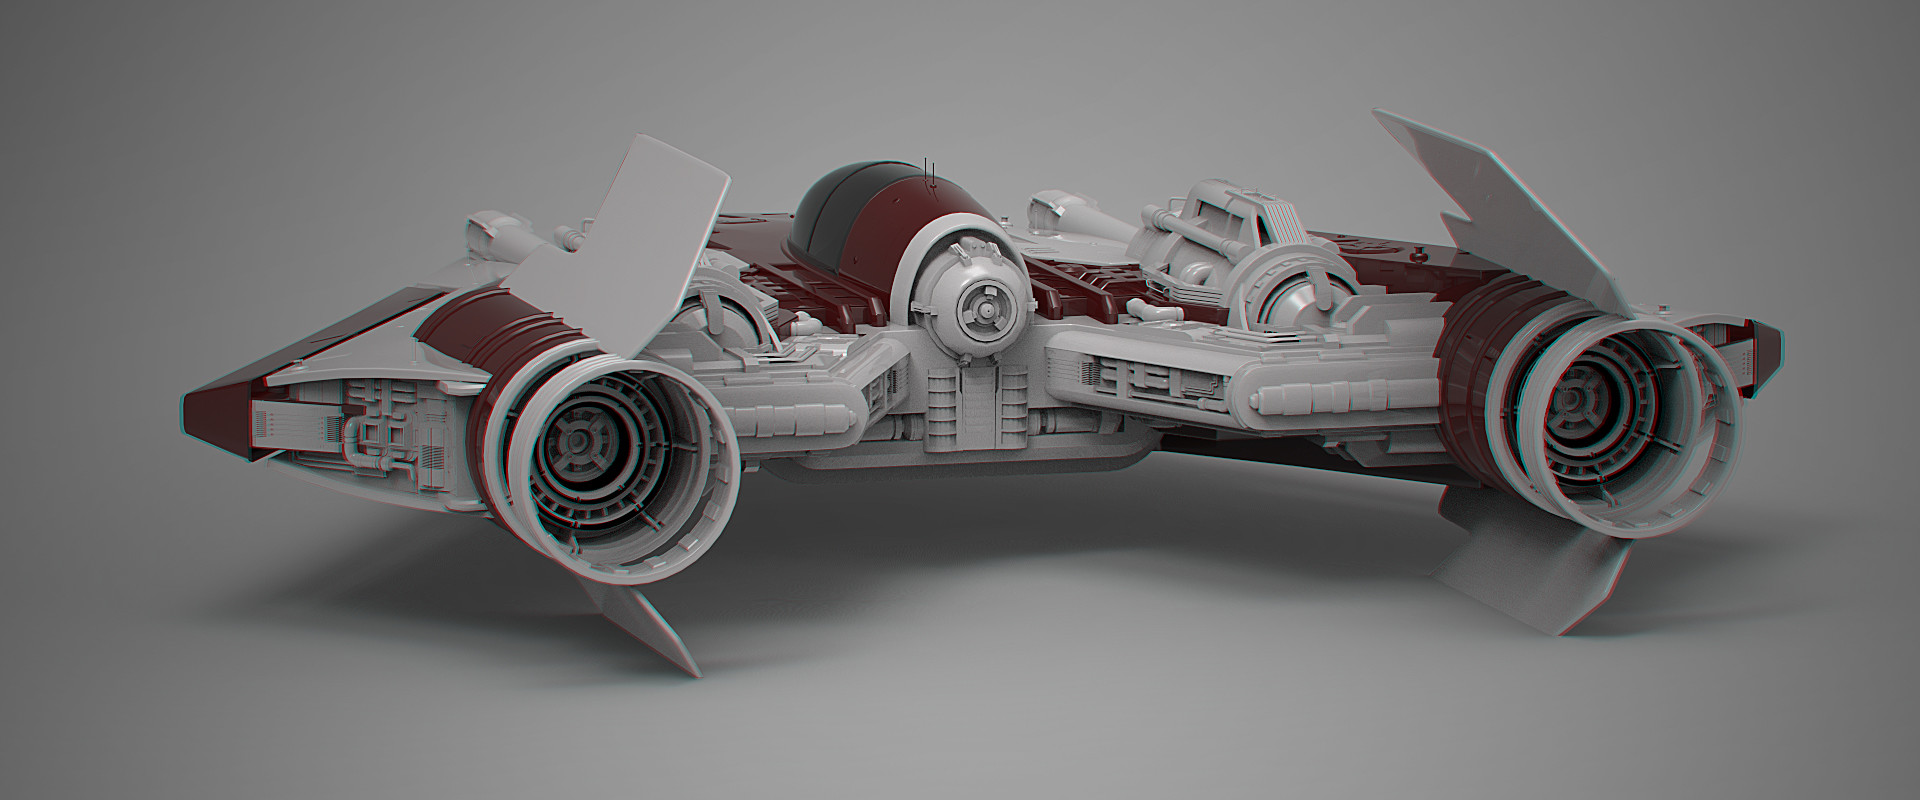 Andrew Hodgson - A-Wing Redesign